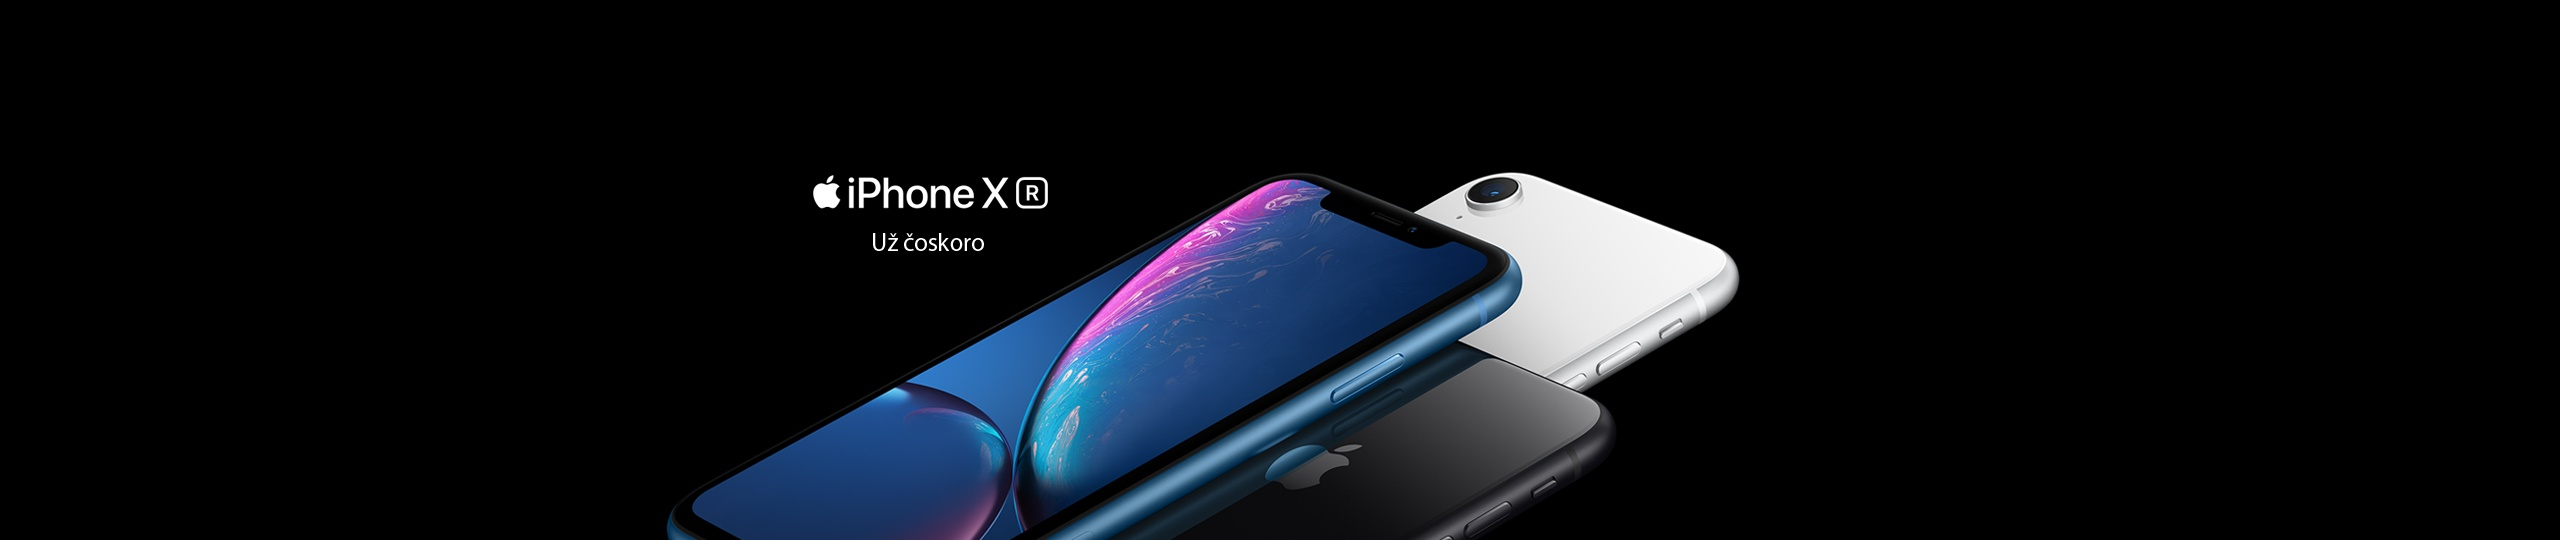 iPhone XR uz coskoro HB